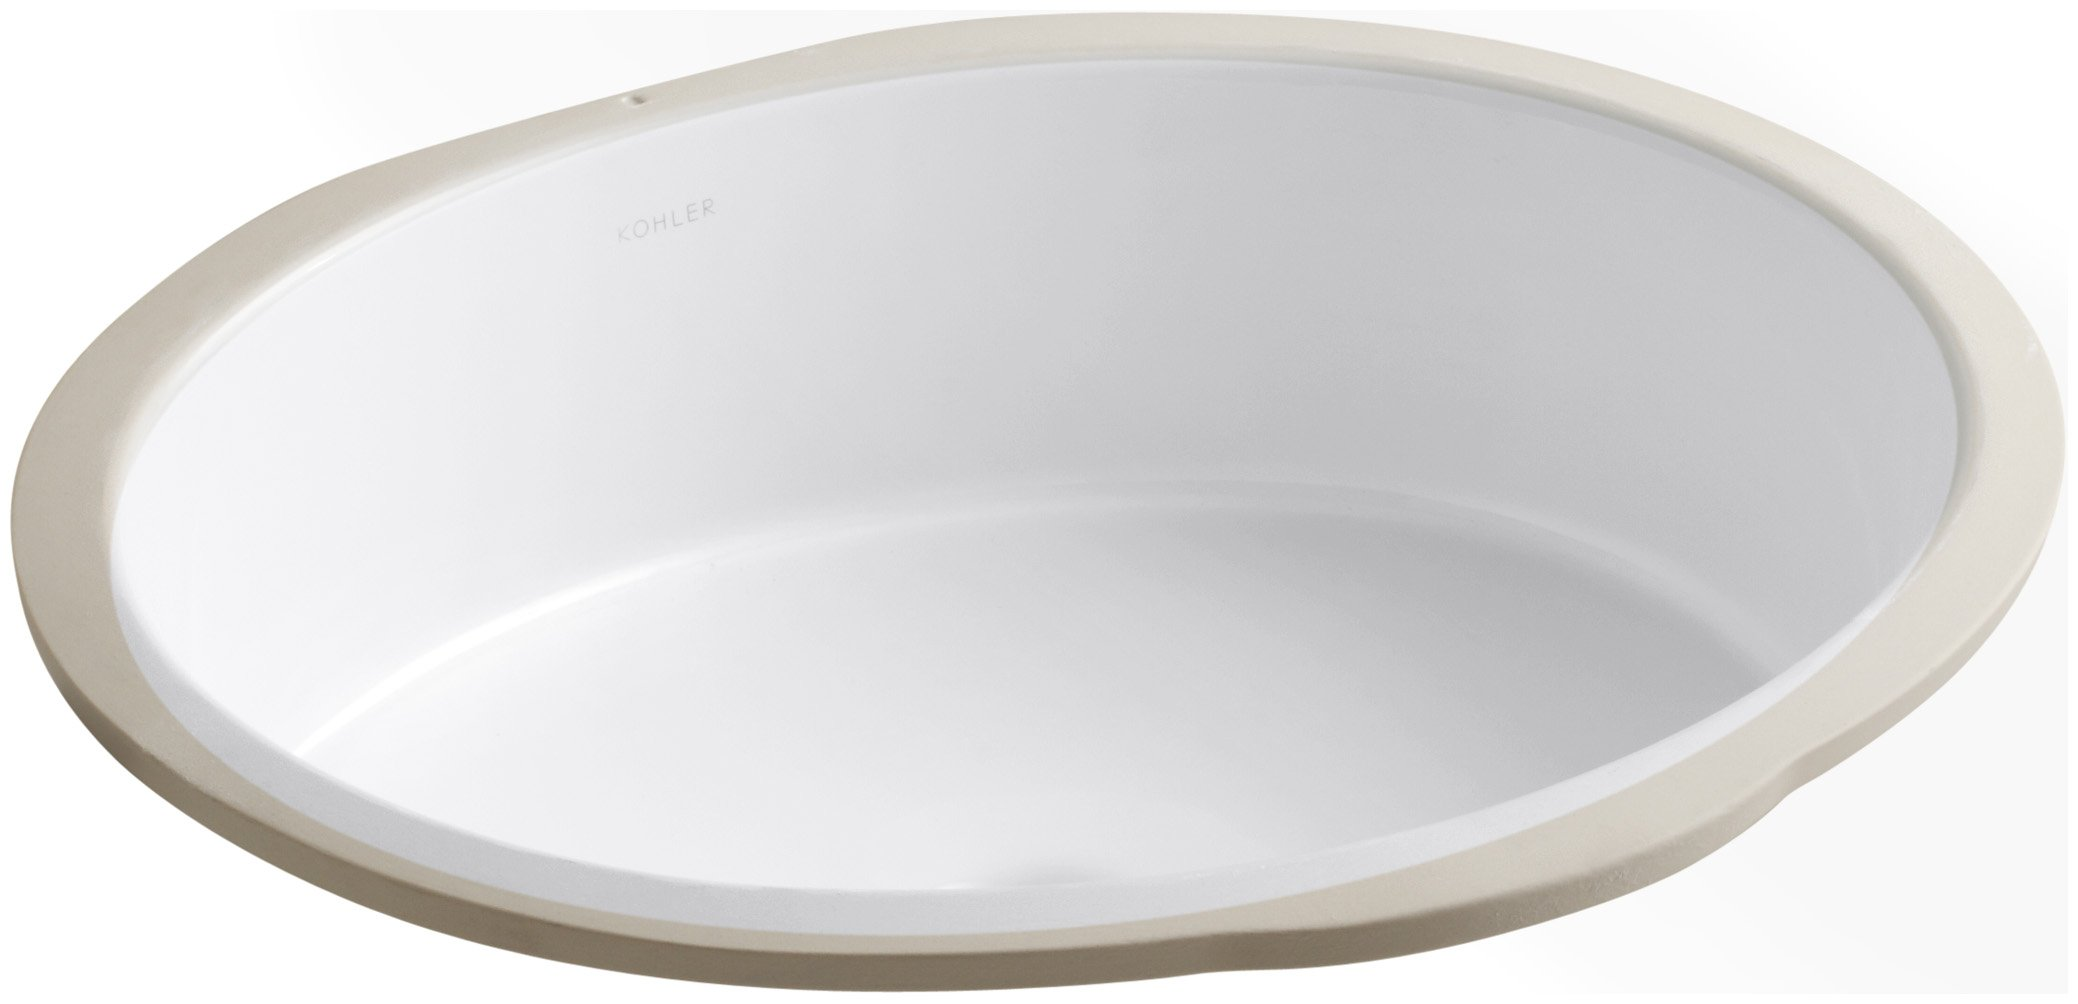 KOHLER K-2881-0 Verticyl Oval Undercounter Bathroom Sink, White